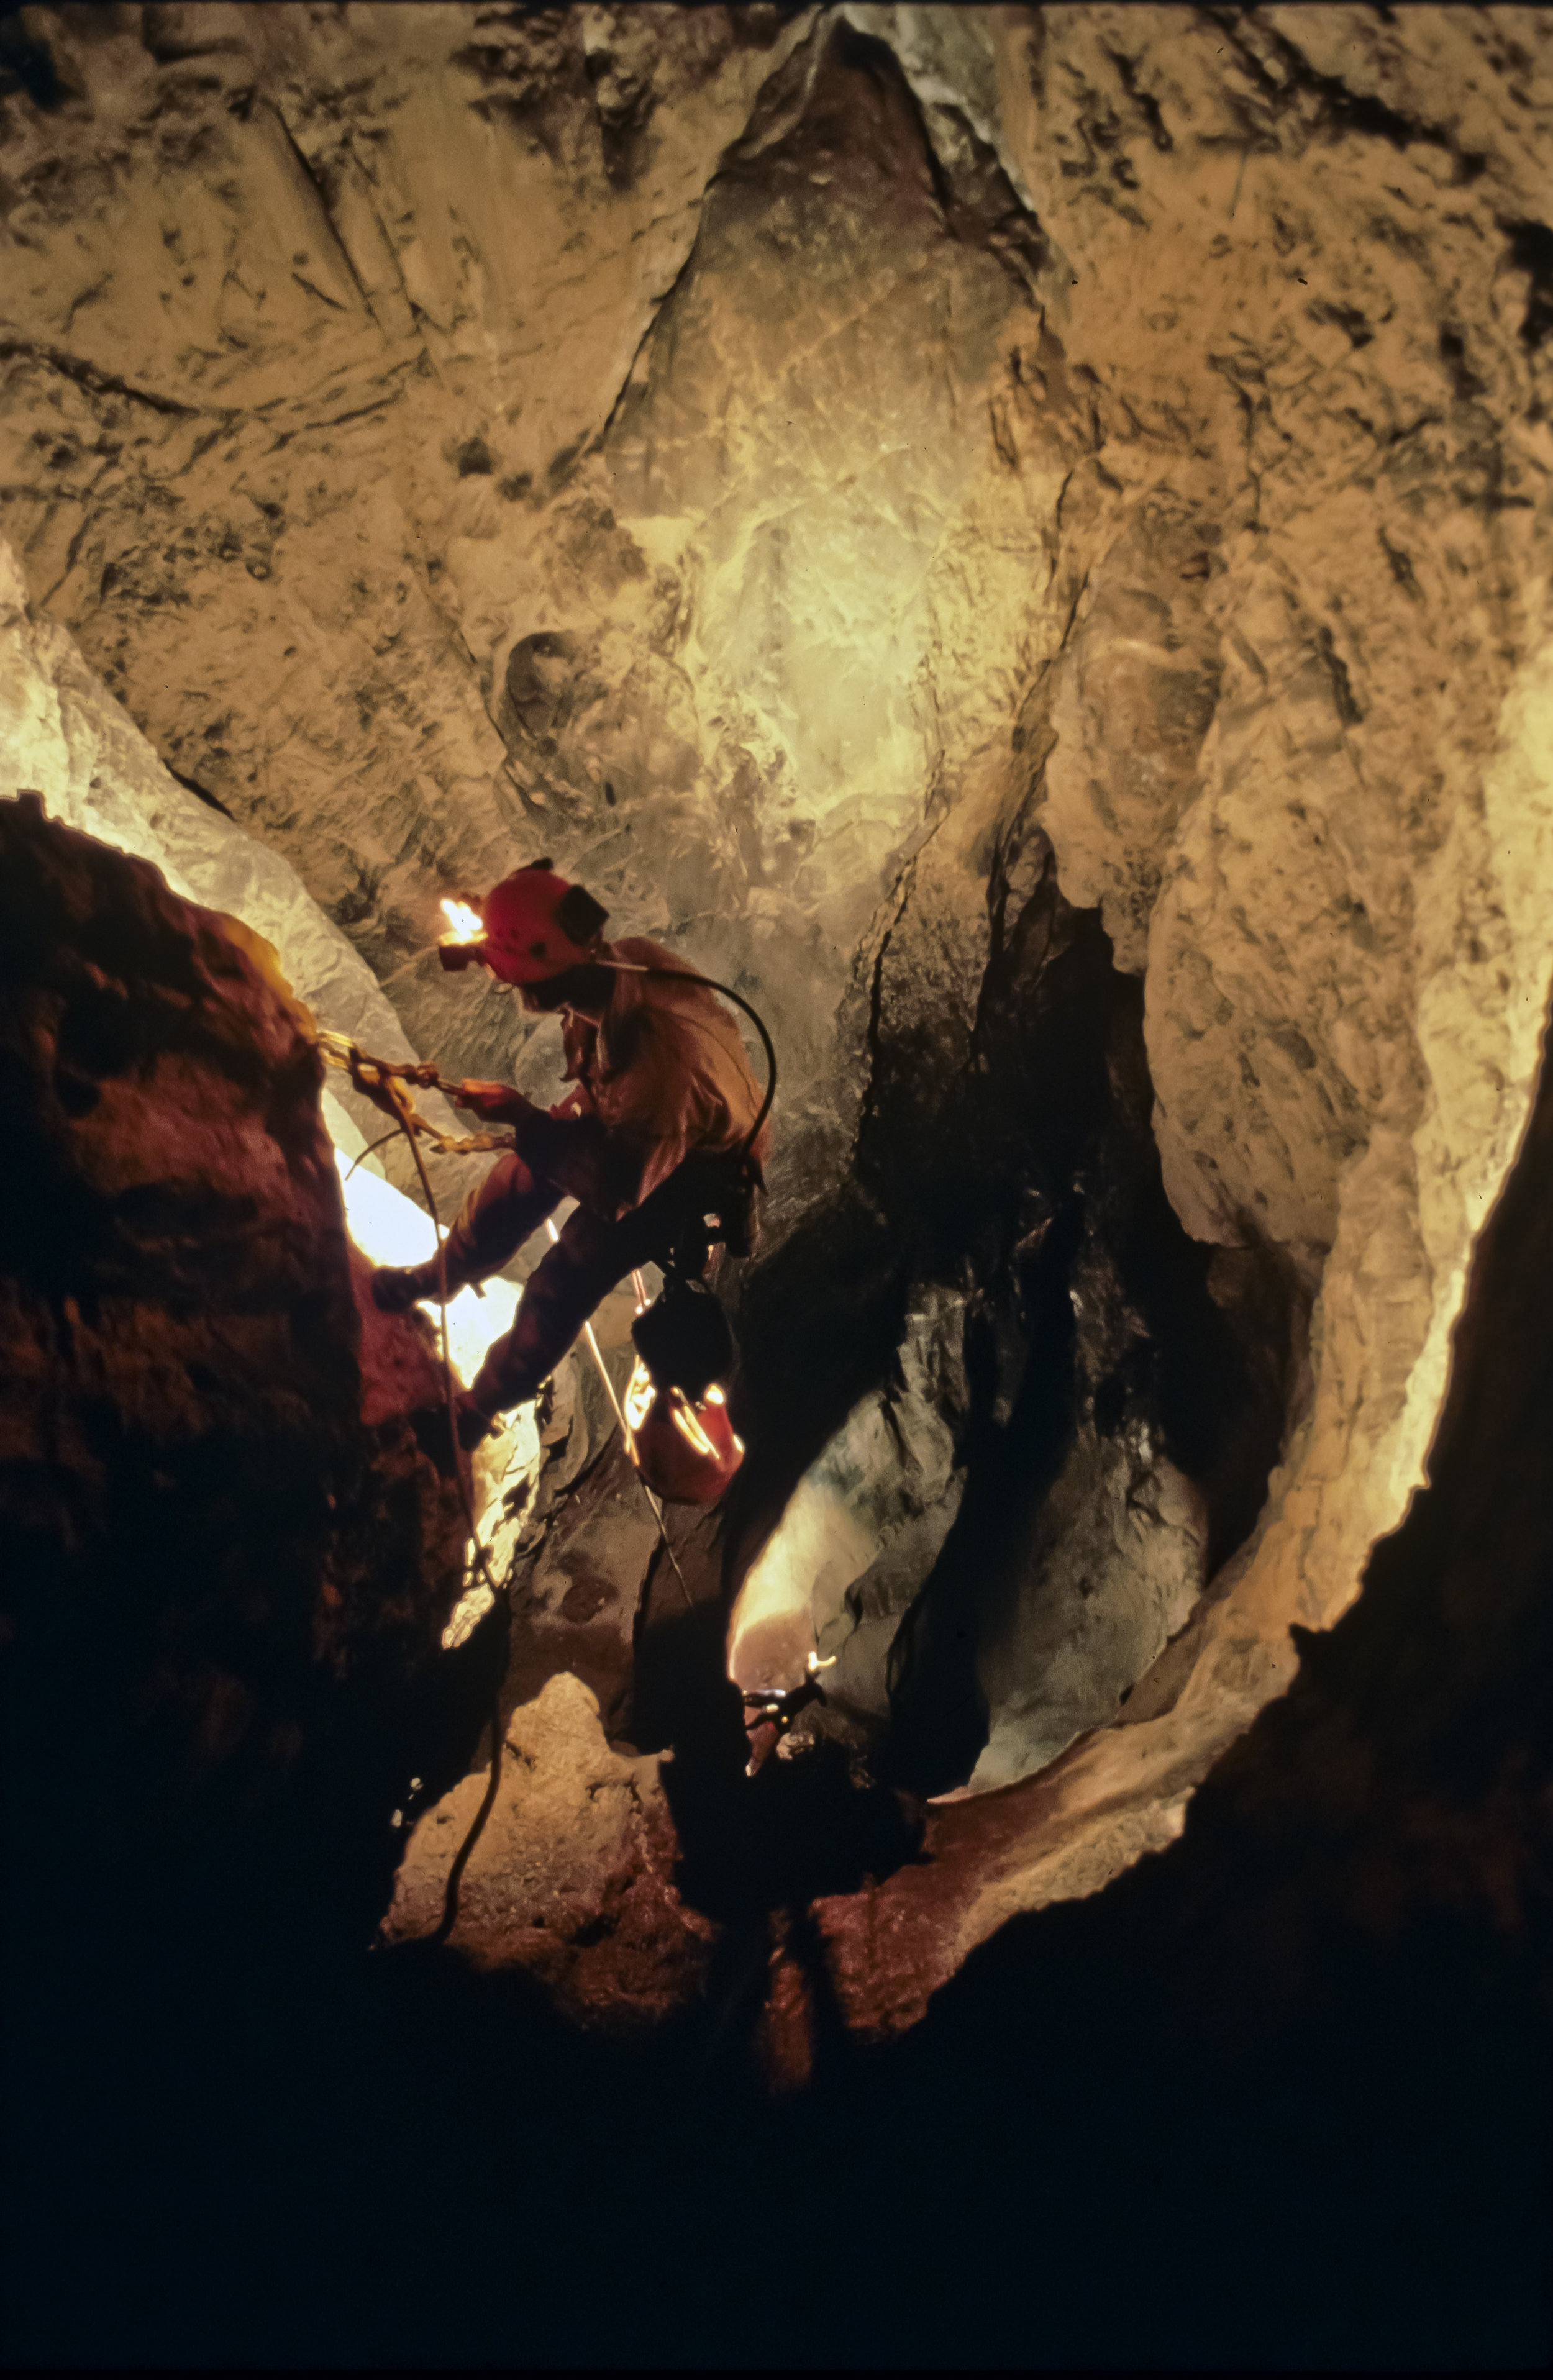 Barbara am Ende (top) and Bill Stone descend the second and third segments of the 100m Shaft. Photo by U. S. Deep Caving Team/Wes Skiles.